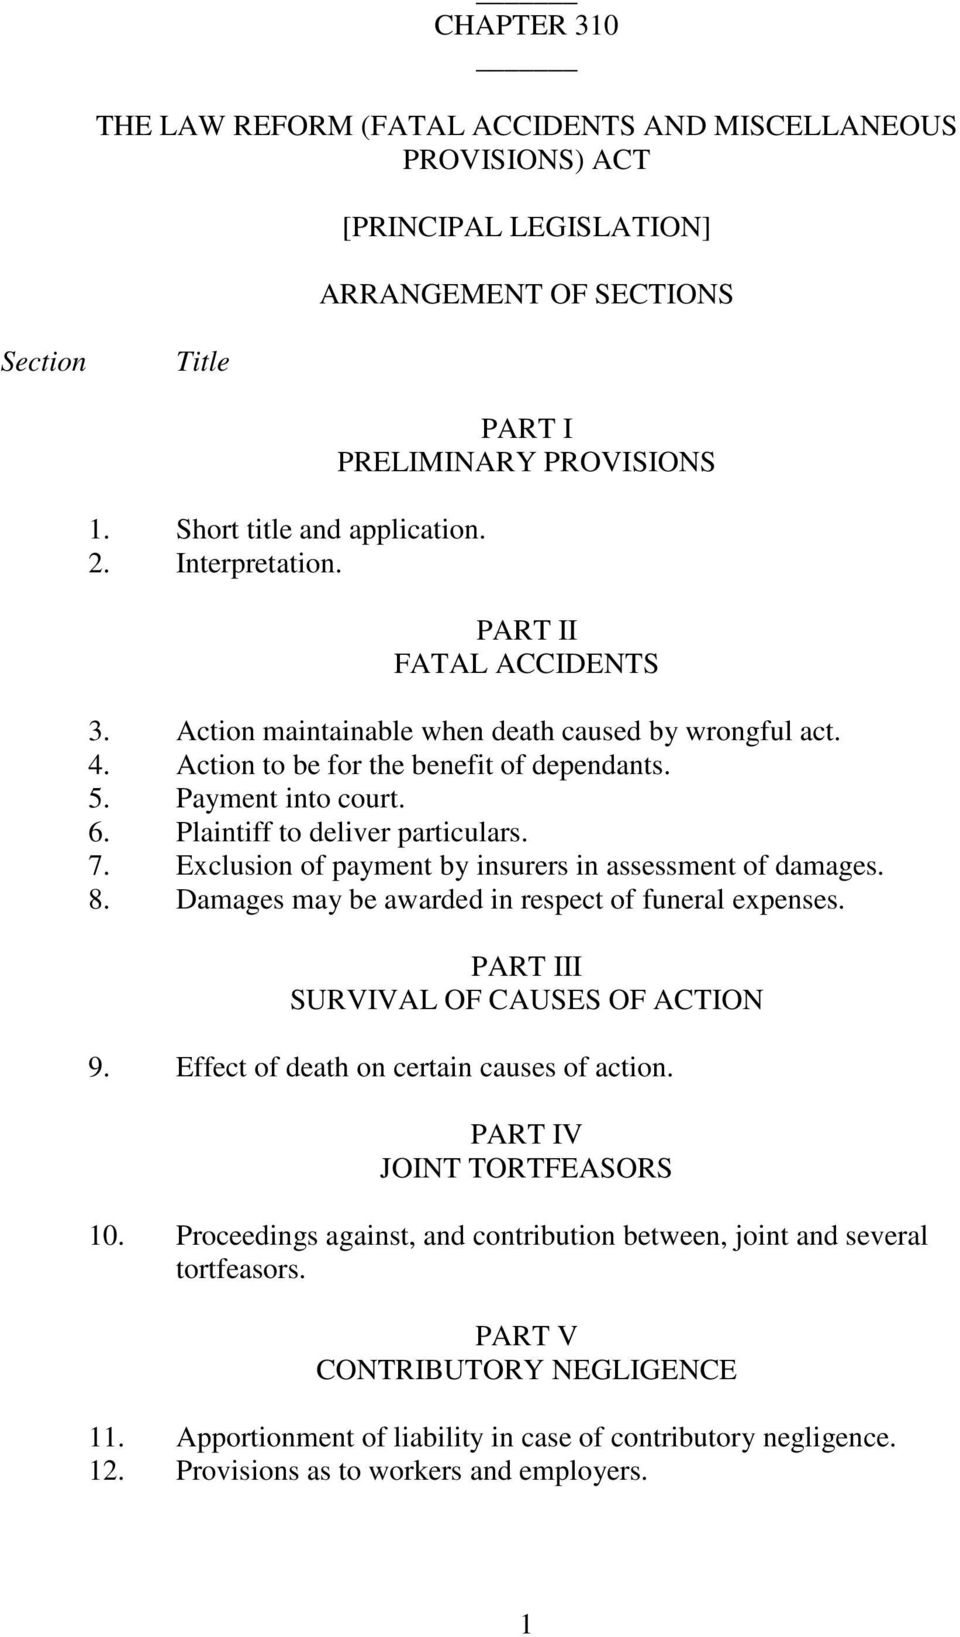 Plaintiff to deliver particulars. 7. Exclusion of payment by insurers in assessment of damages. 8. Damages may be awarded in respect of funeral expenses. PART III SURVIVAL OF CAUSES OF ACTION 9.